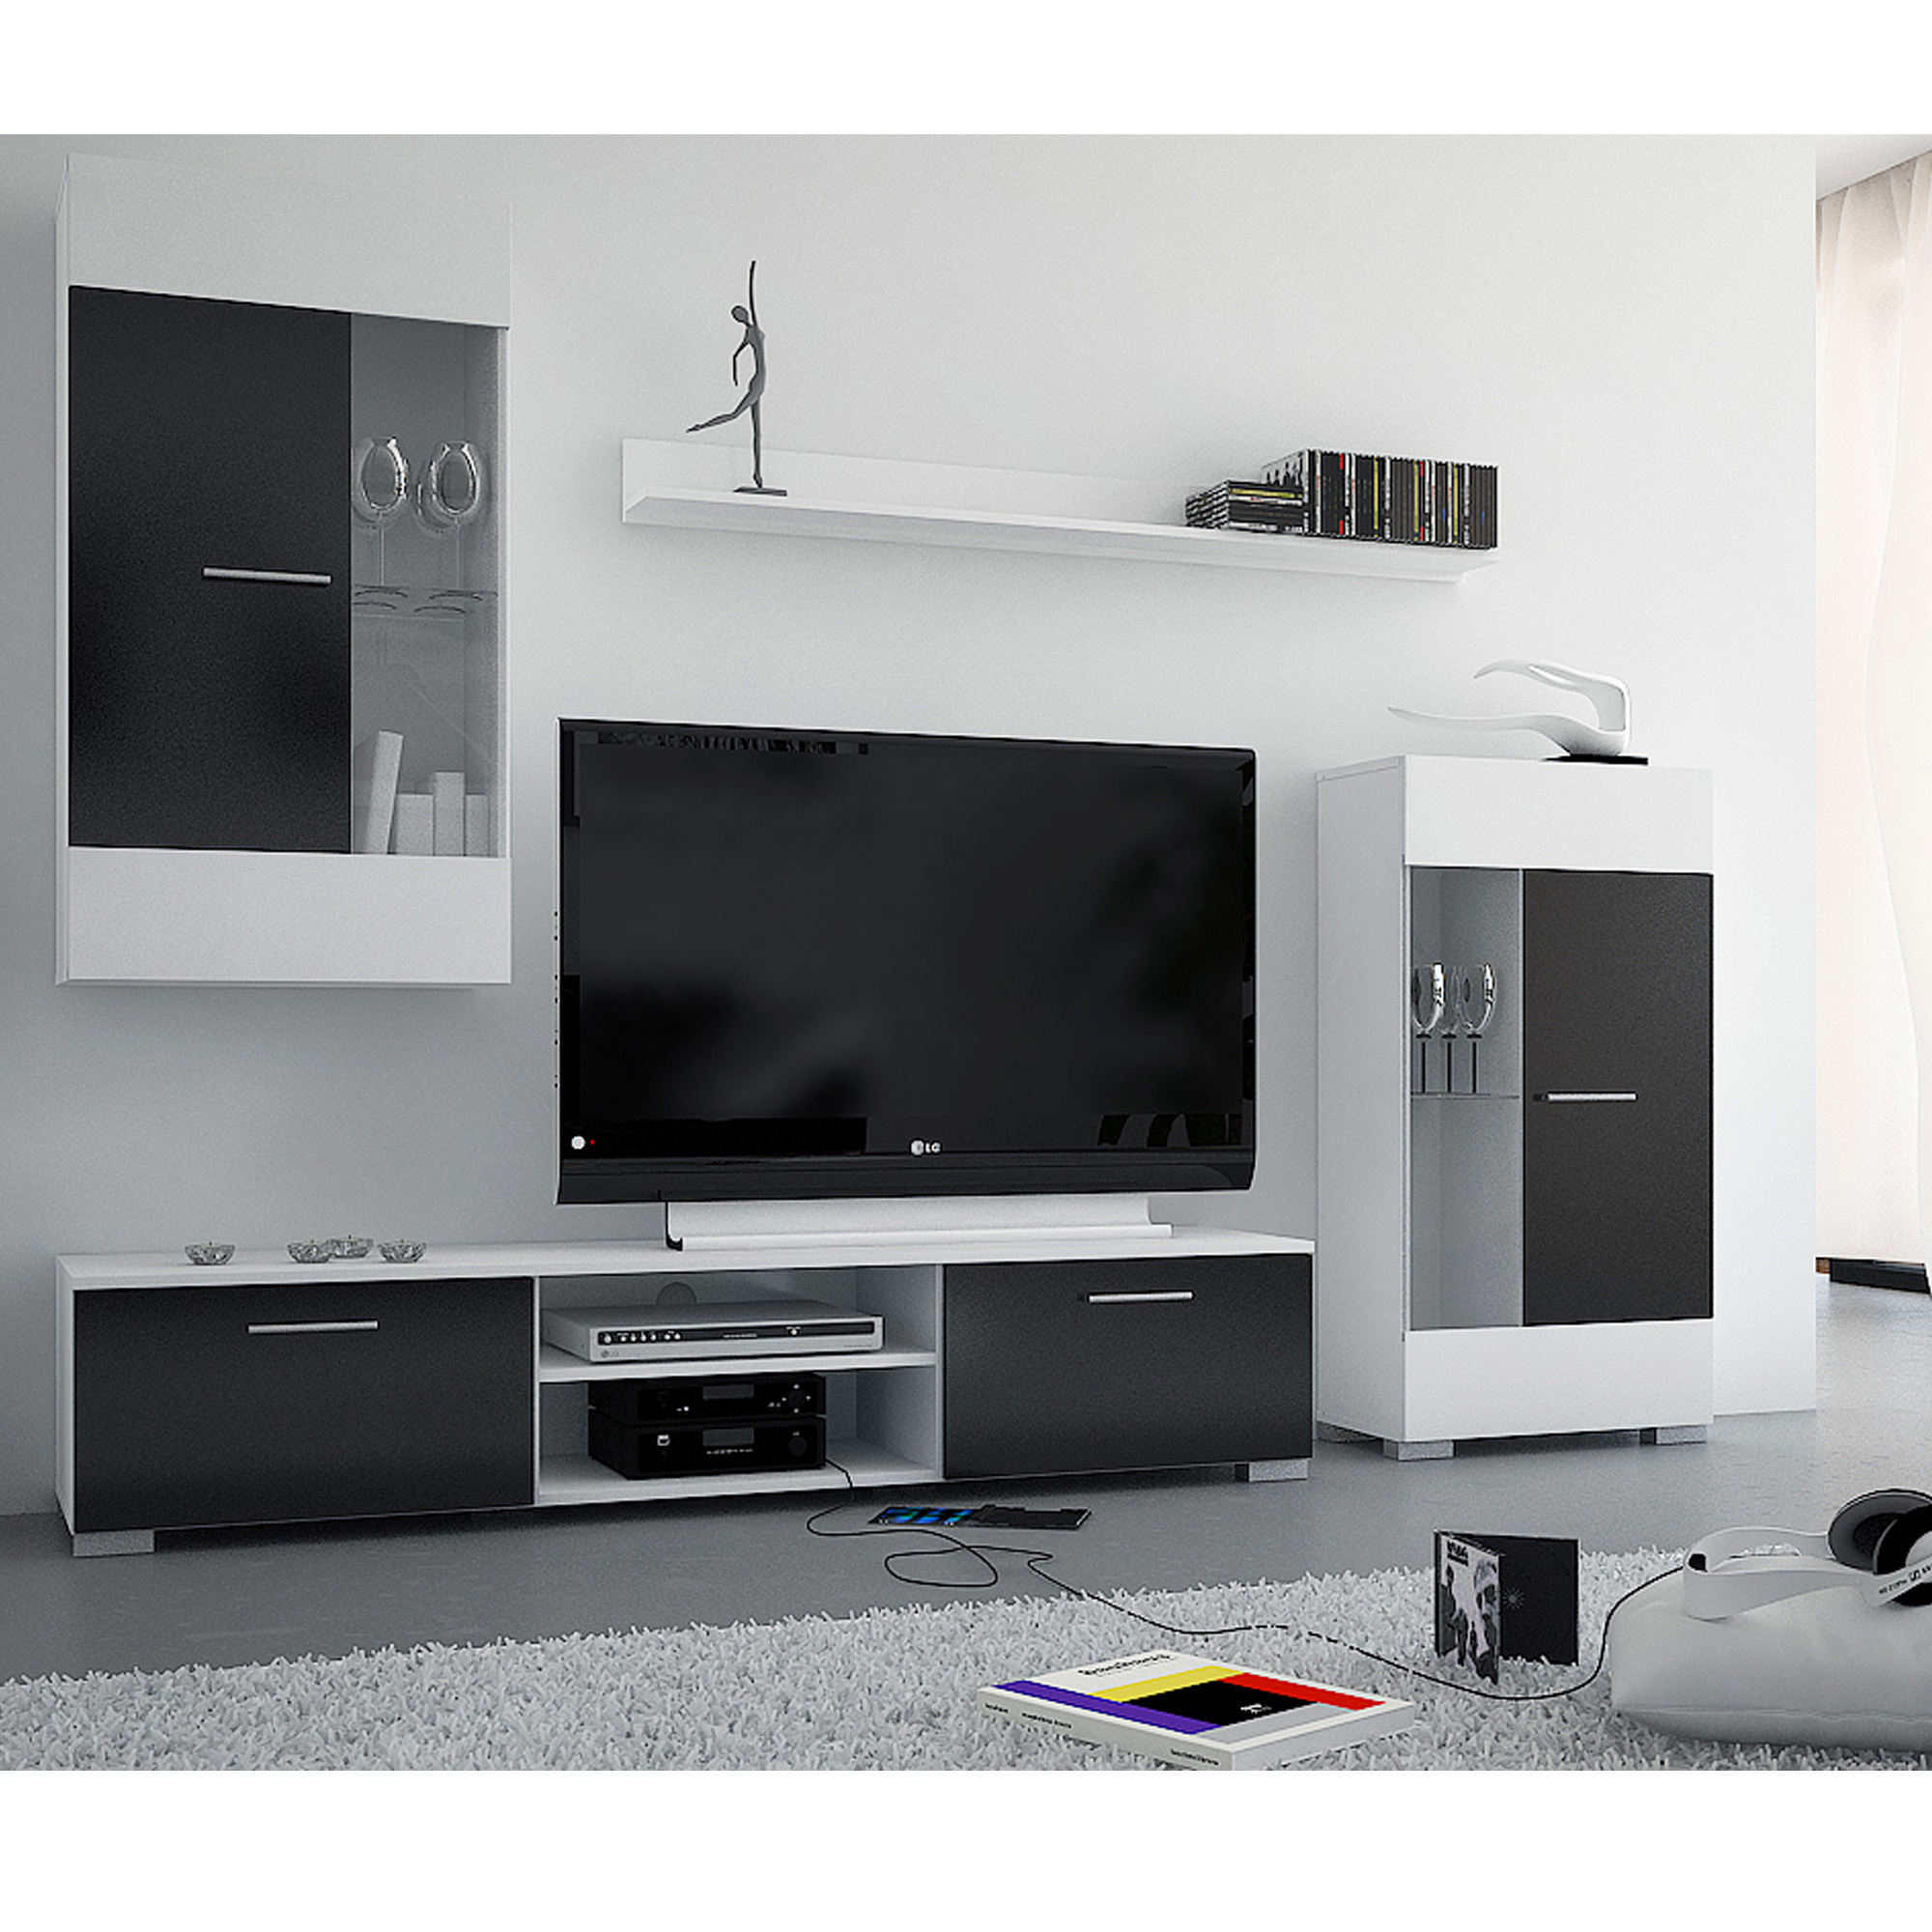 Meuble tv la maison de valerie ensemble meuble tv bravo for Ensemble meuble tv design pas cher